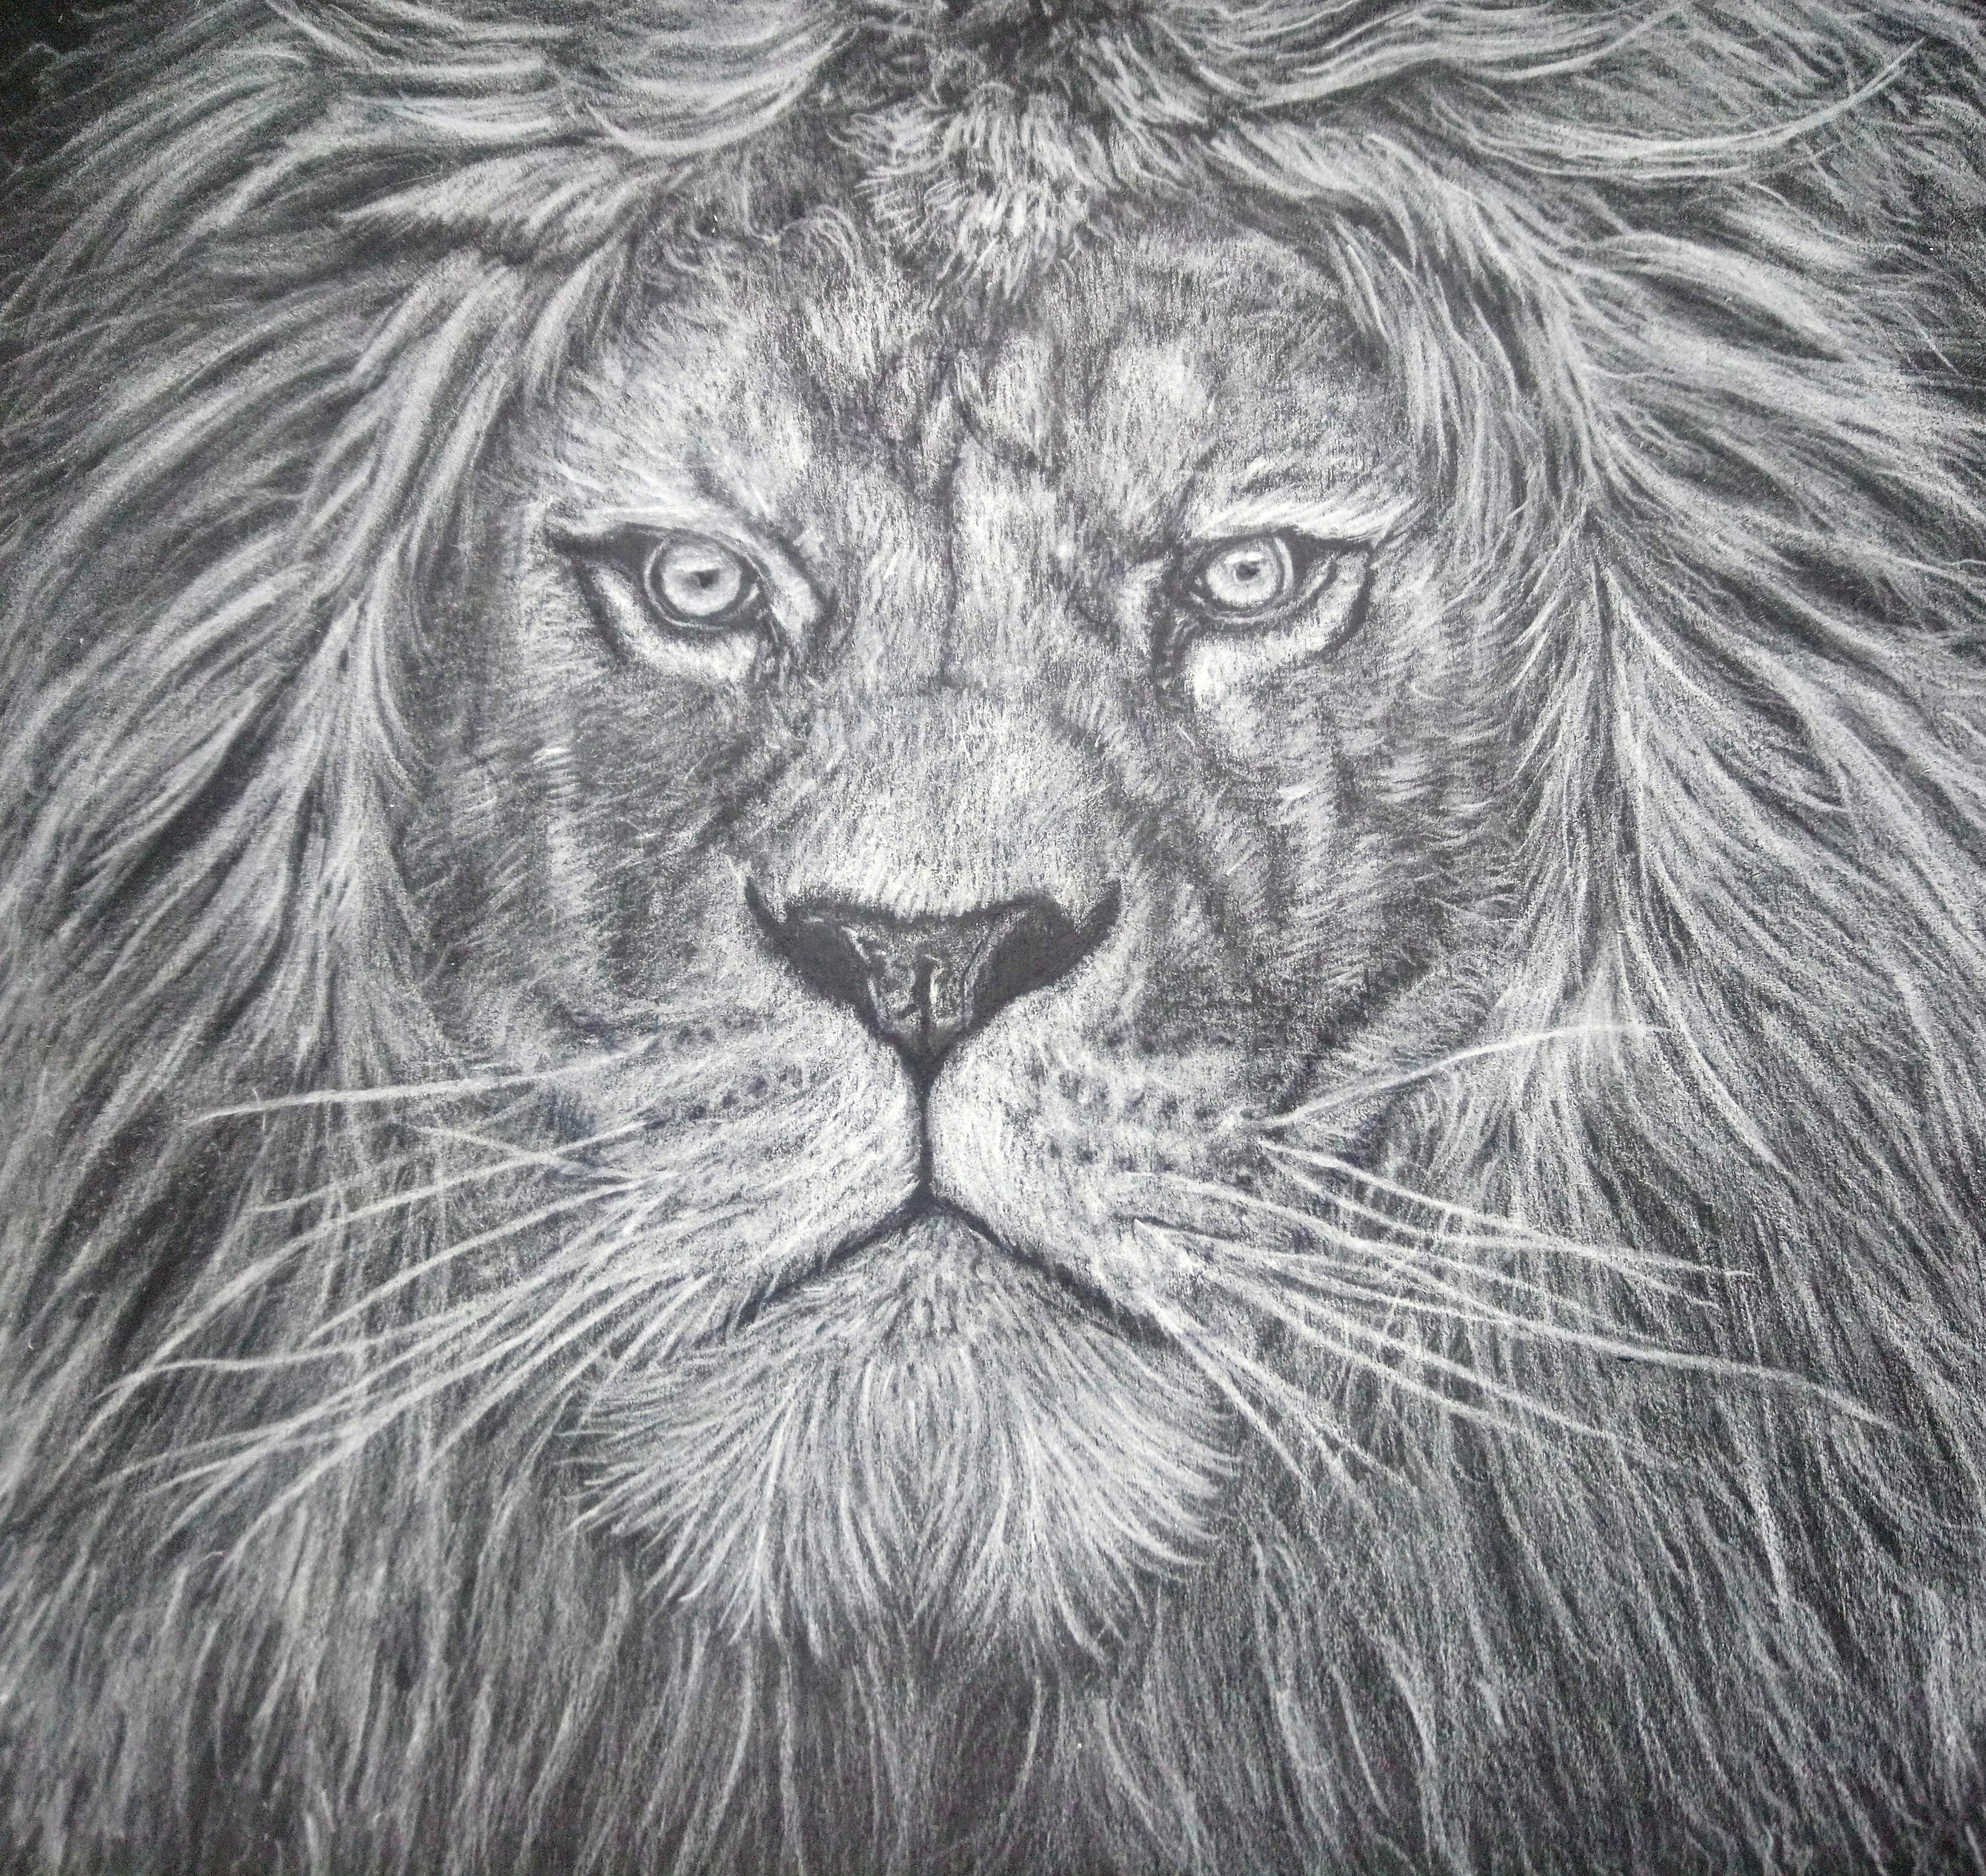 Lion White Colouring Pencil Drawing